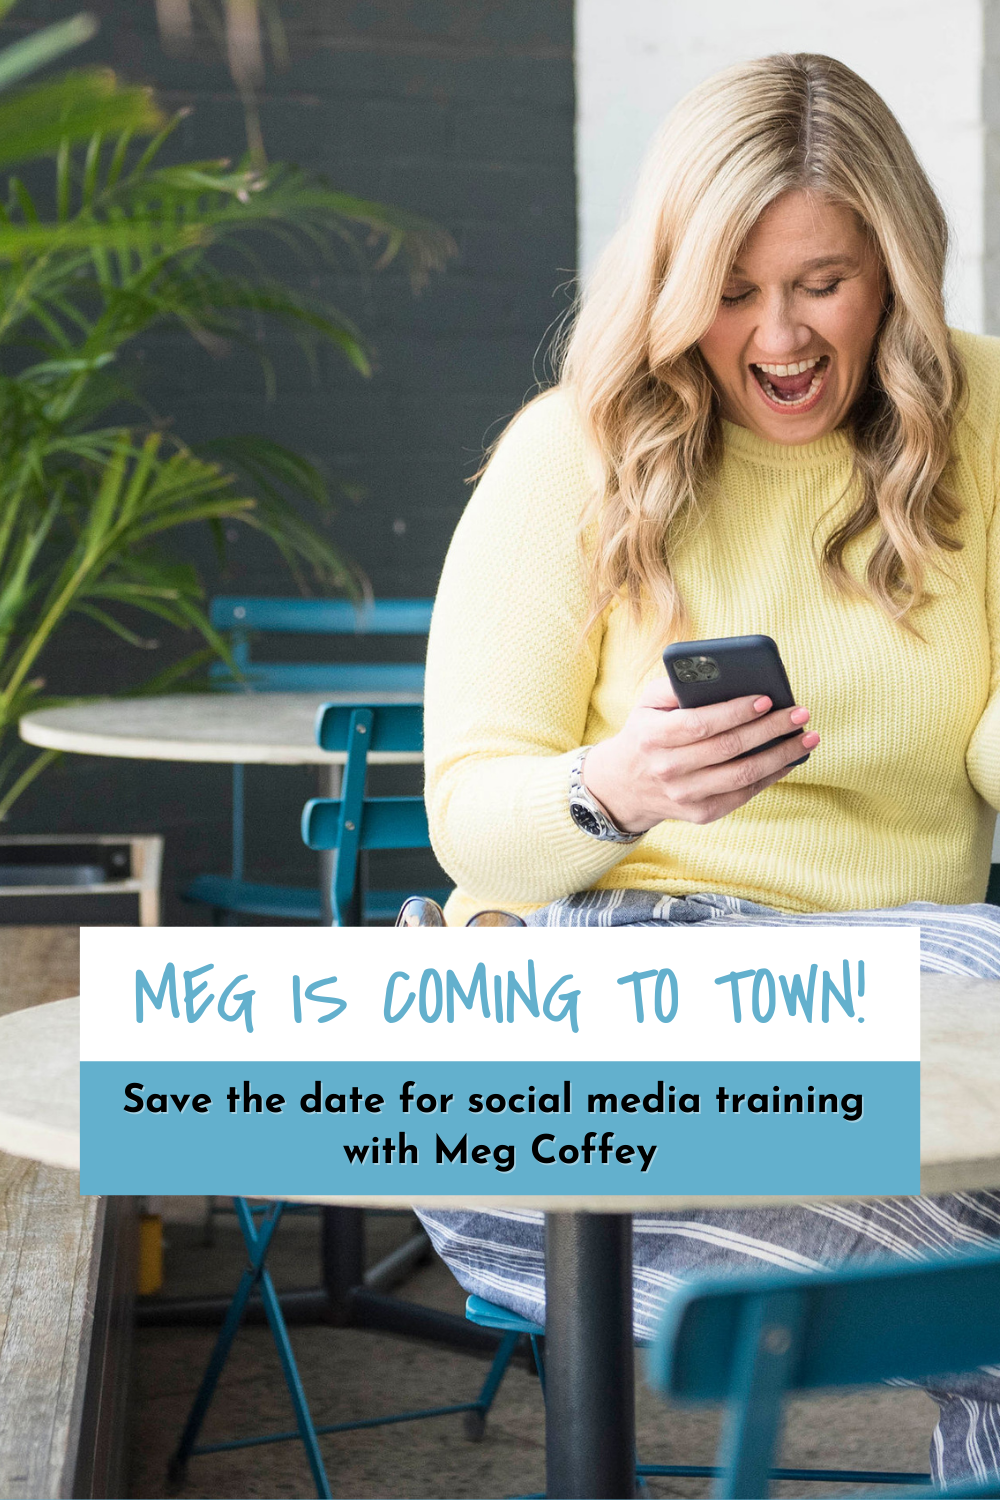 Meg is coming to town!